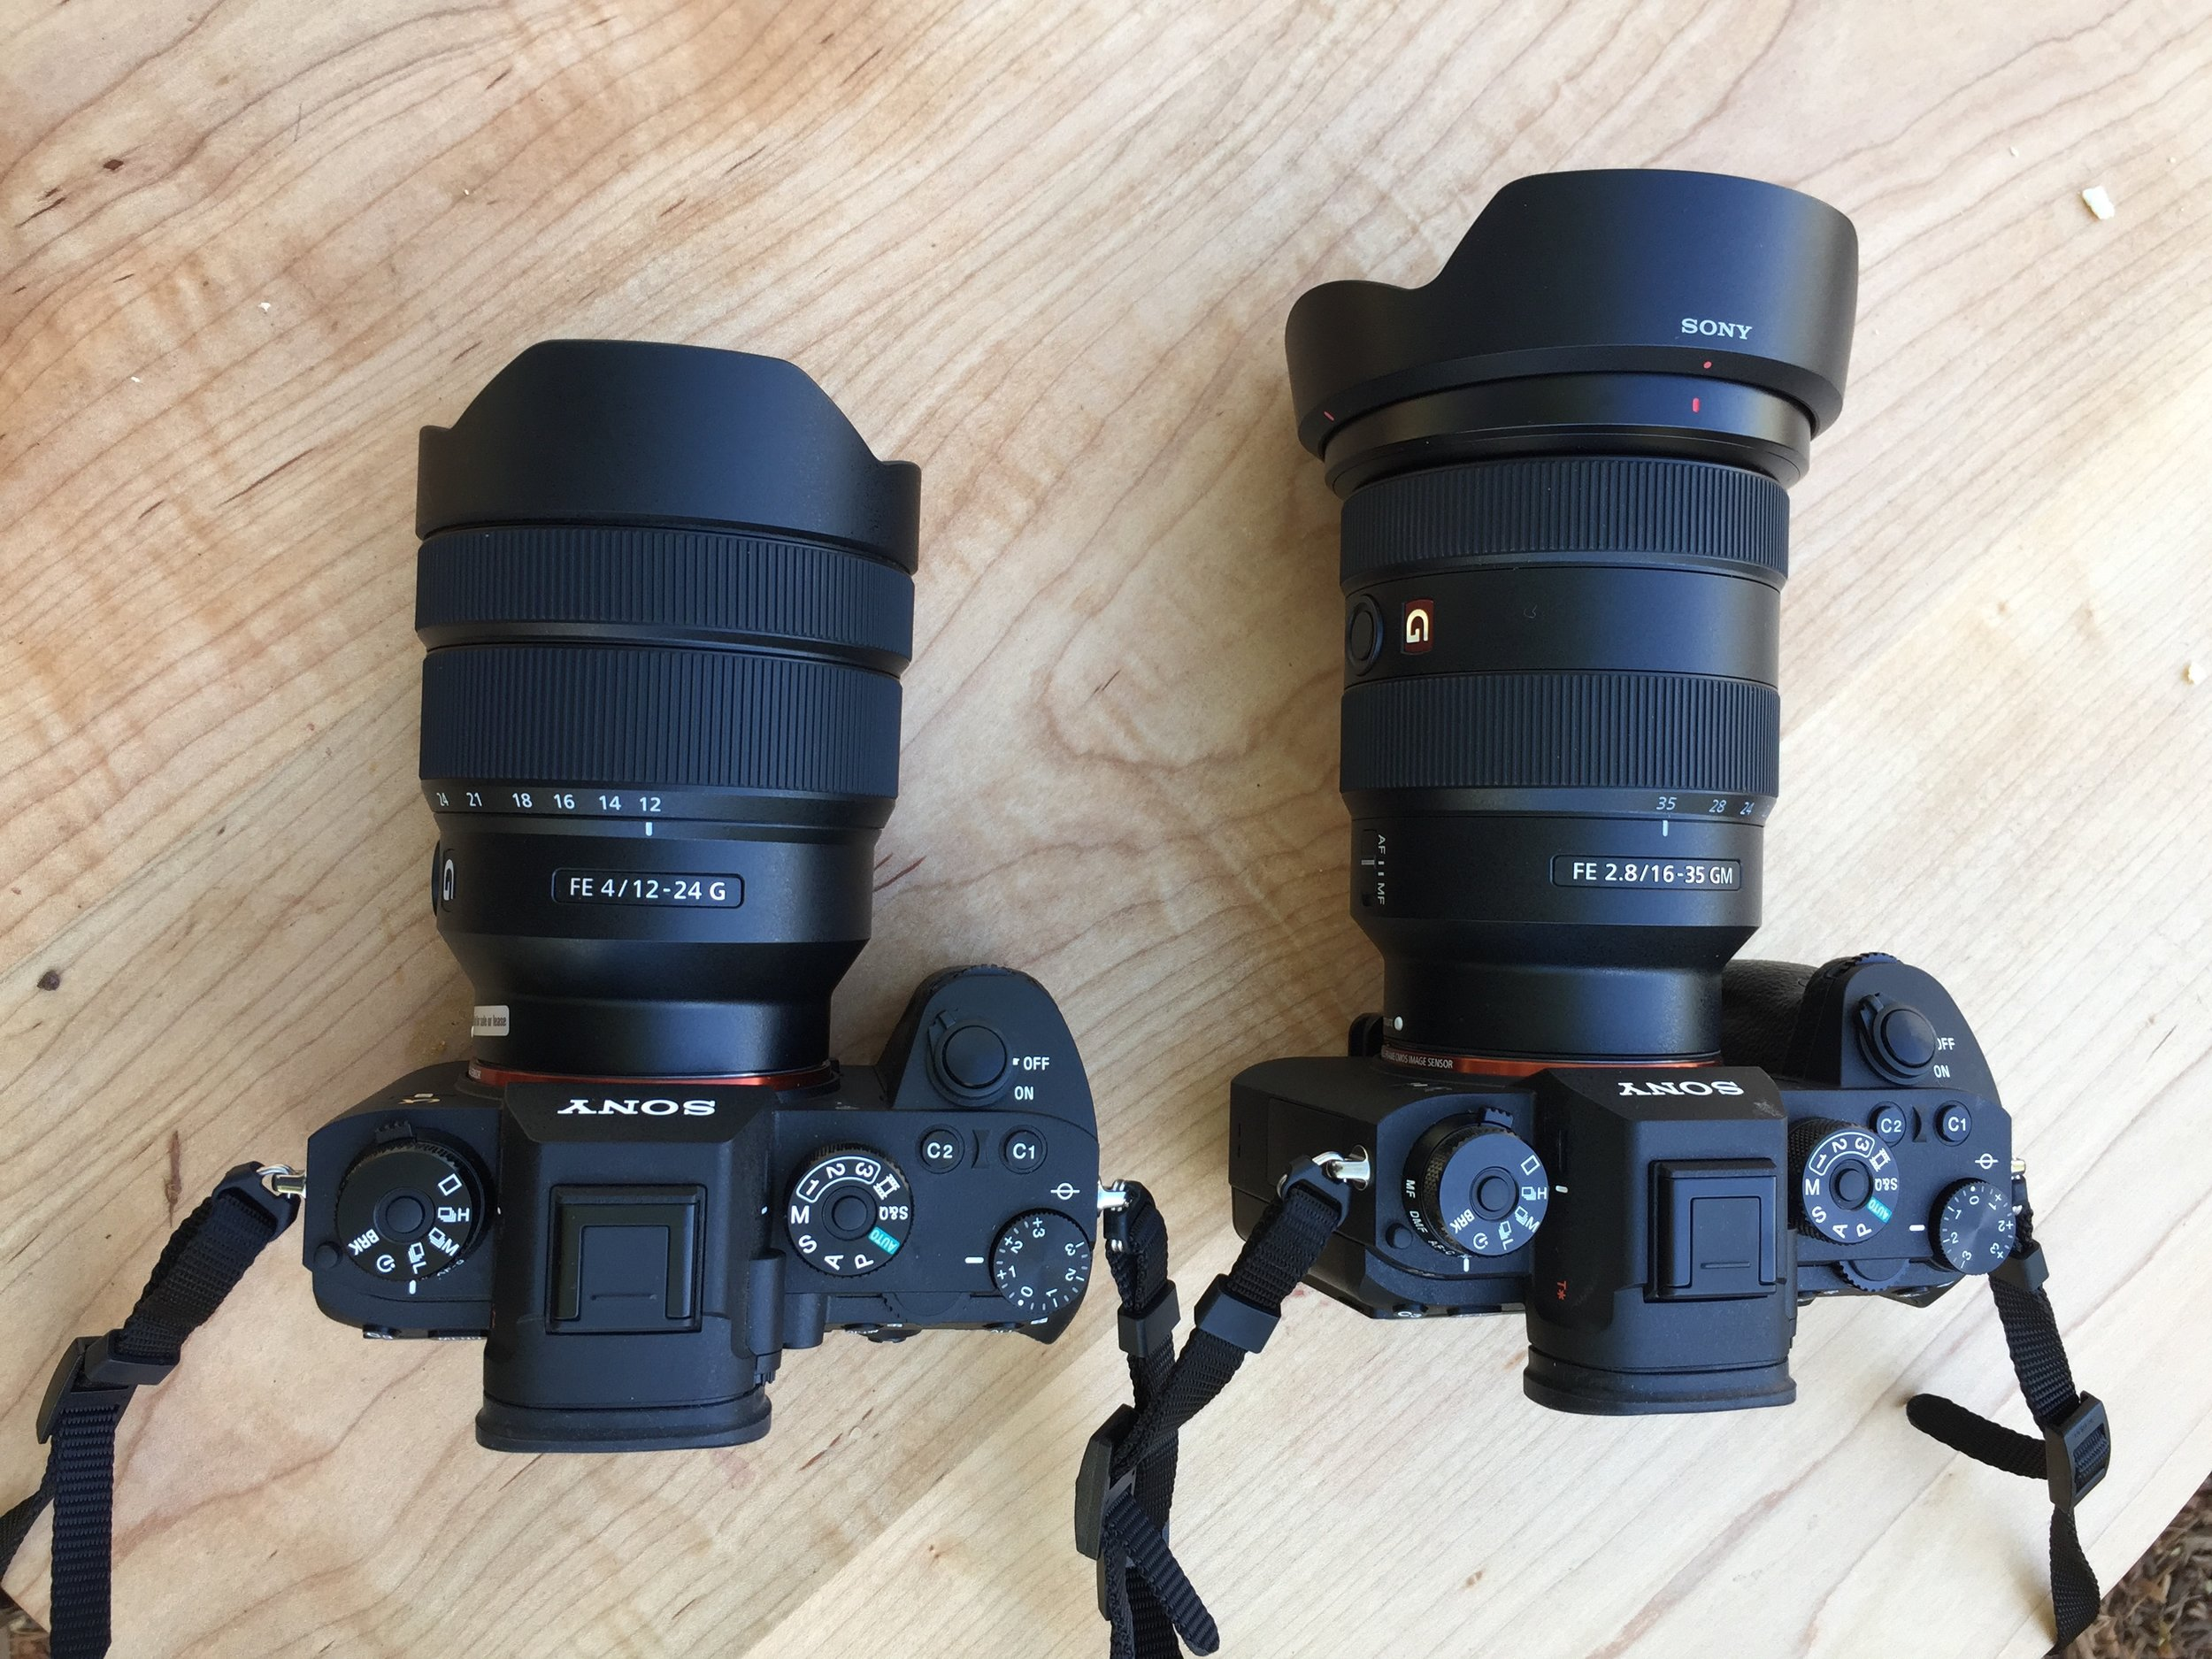 12-24mm f4  and  16-35mm f2.8  on Sony A9s - courtesy of  @AroundQ